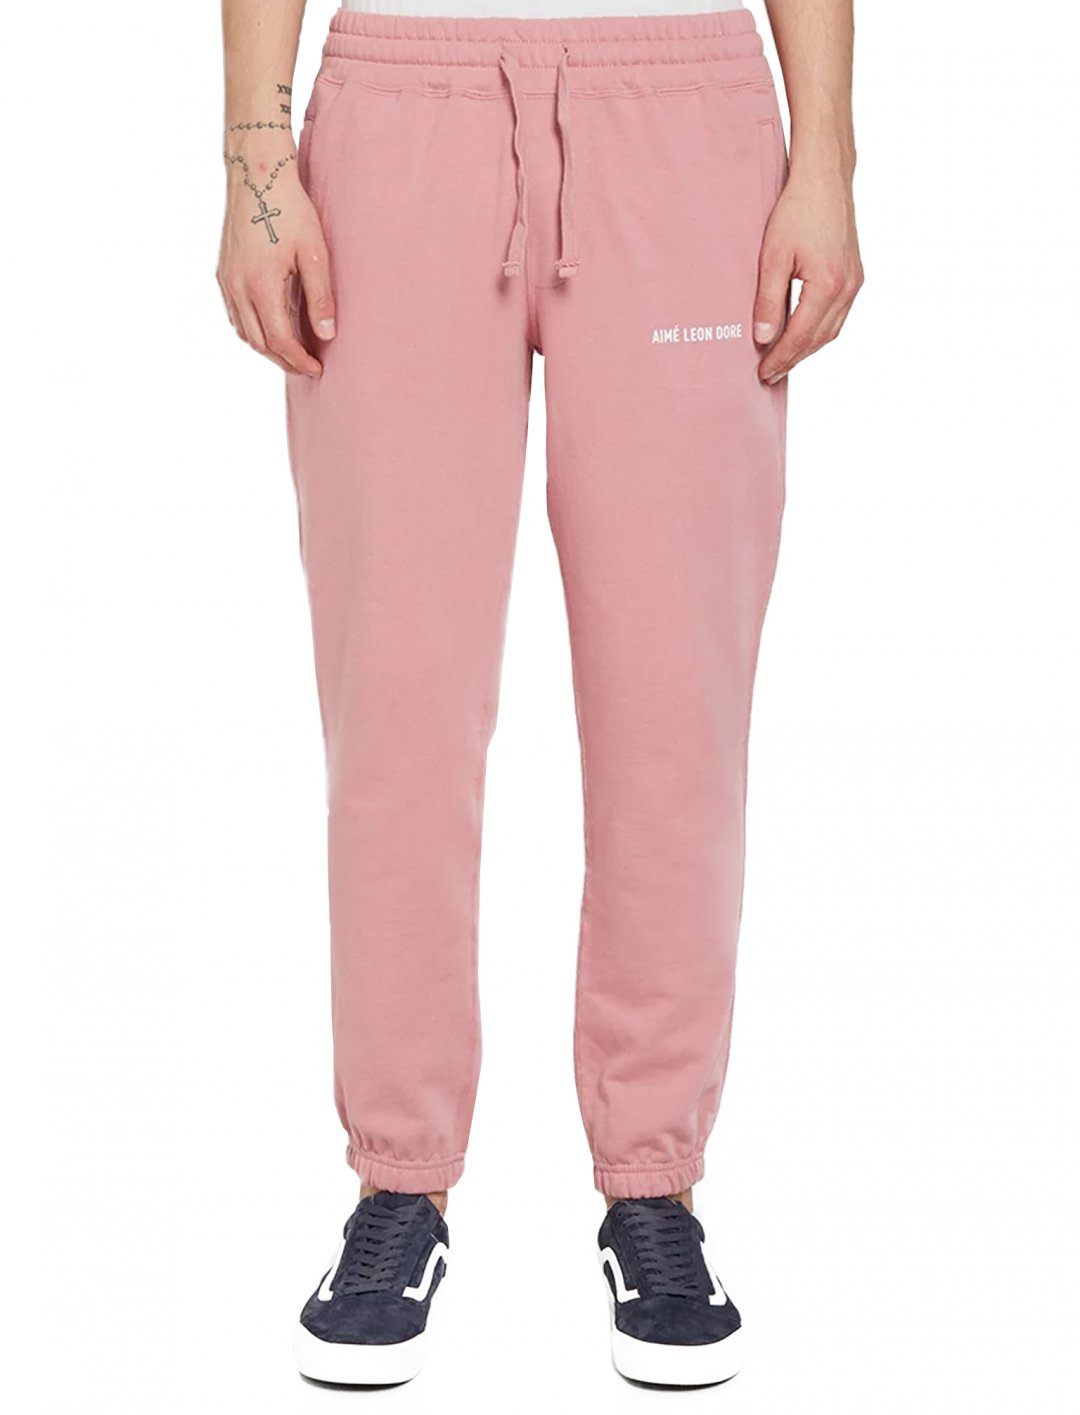 "GASHI's Camper Pant {""id"":5,""product_section_id"":1,""name"":""Clothing"",""order"":5} Aime Leon Dore"